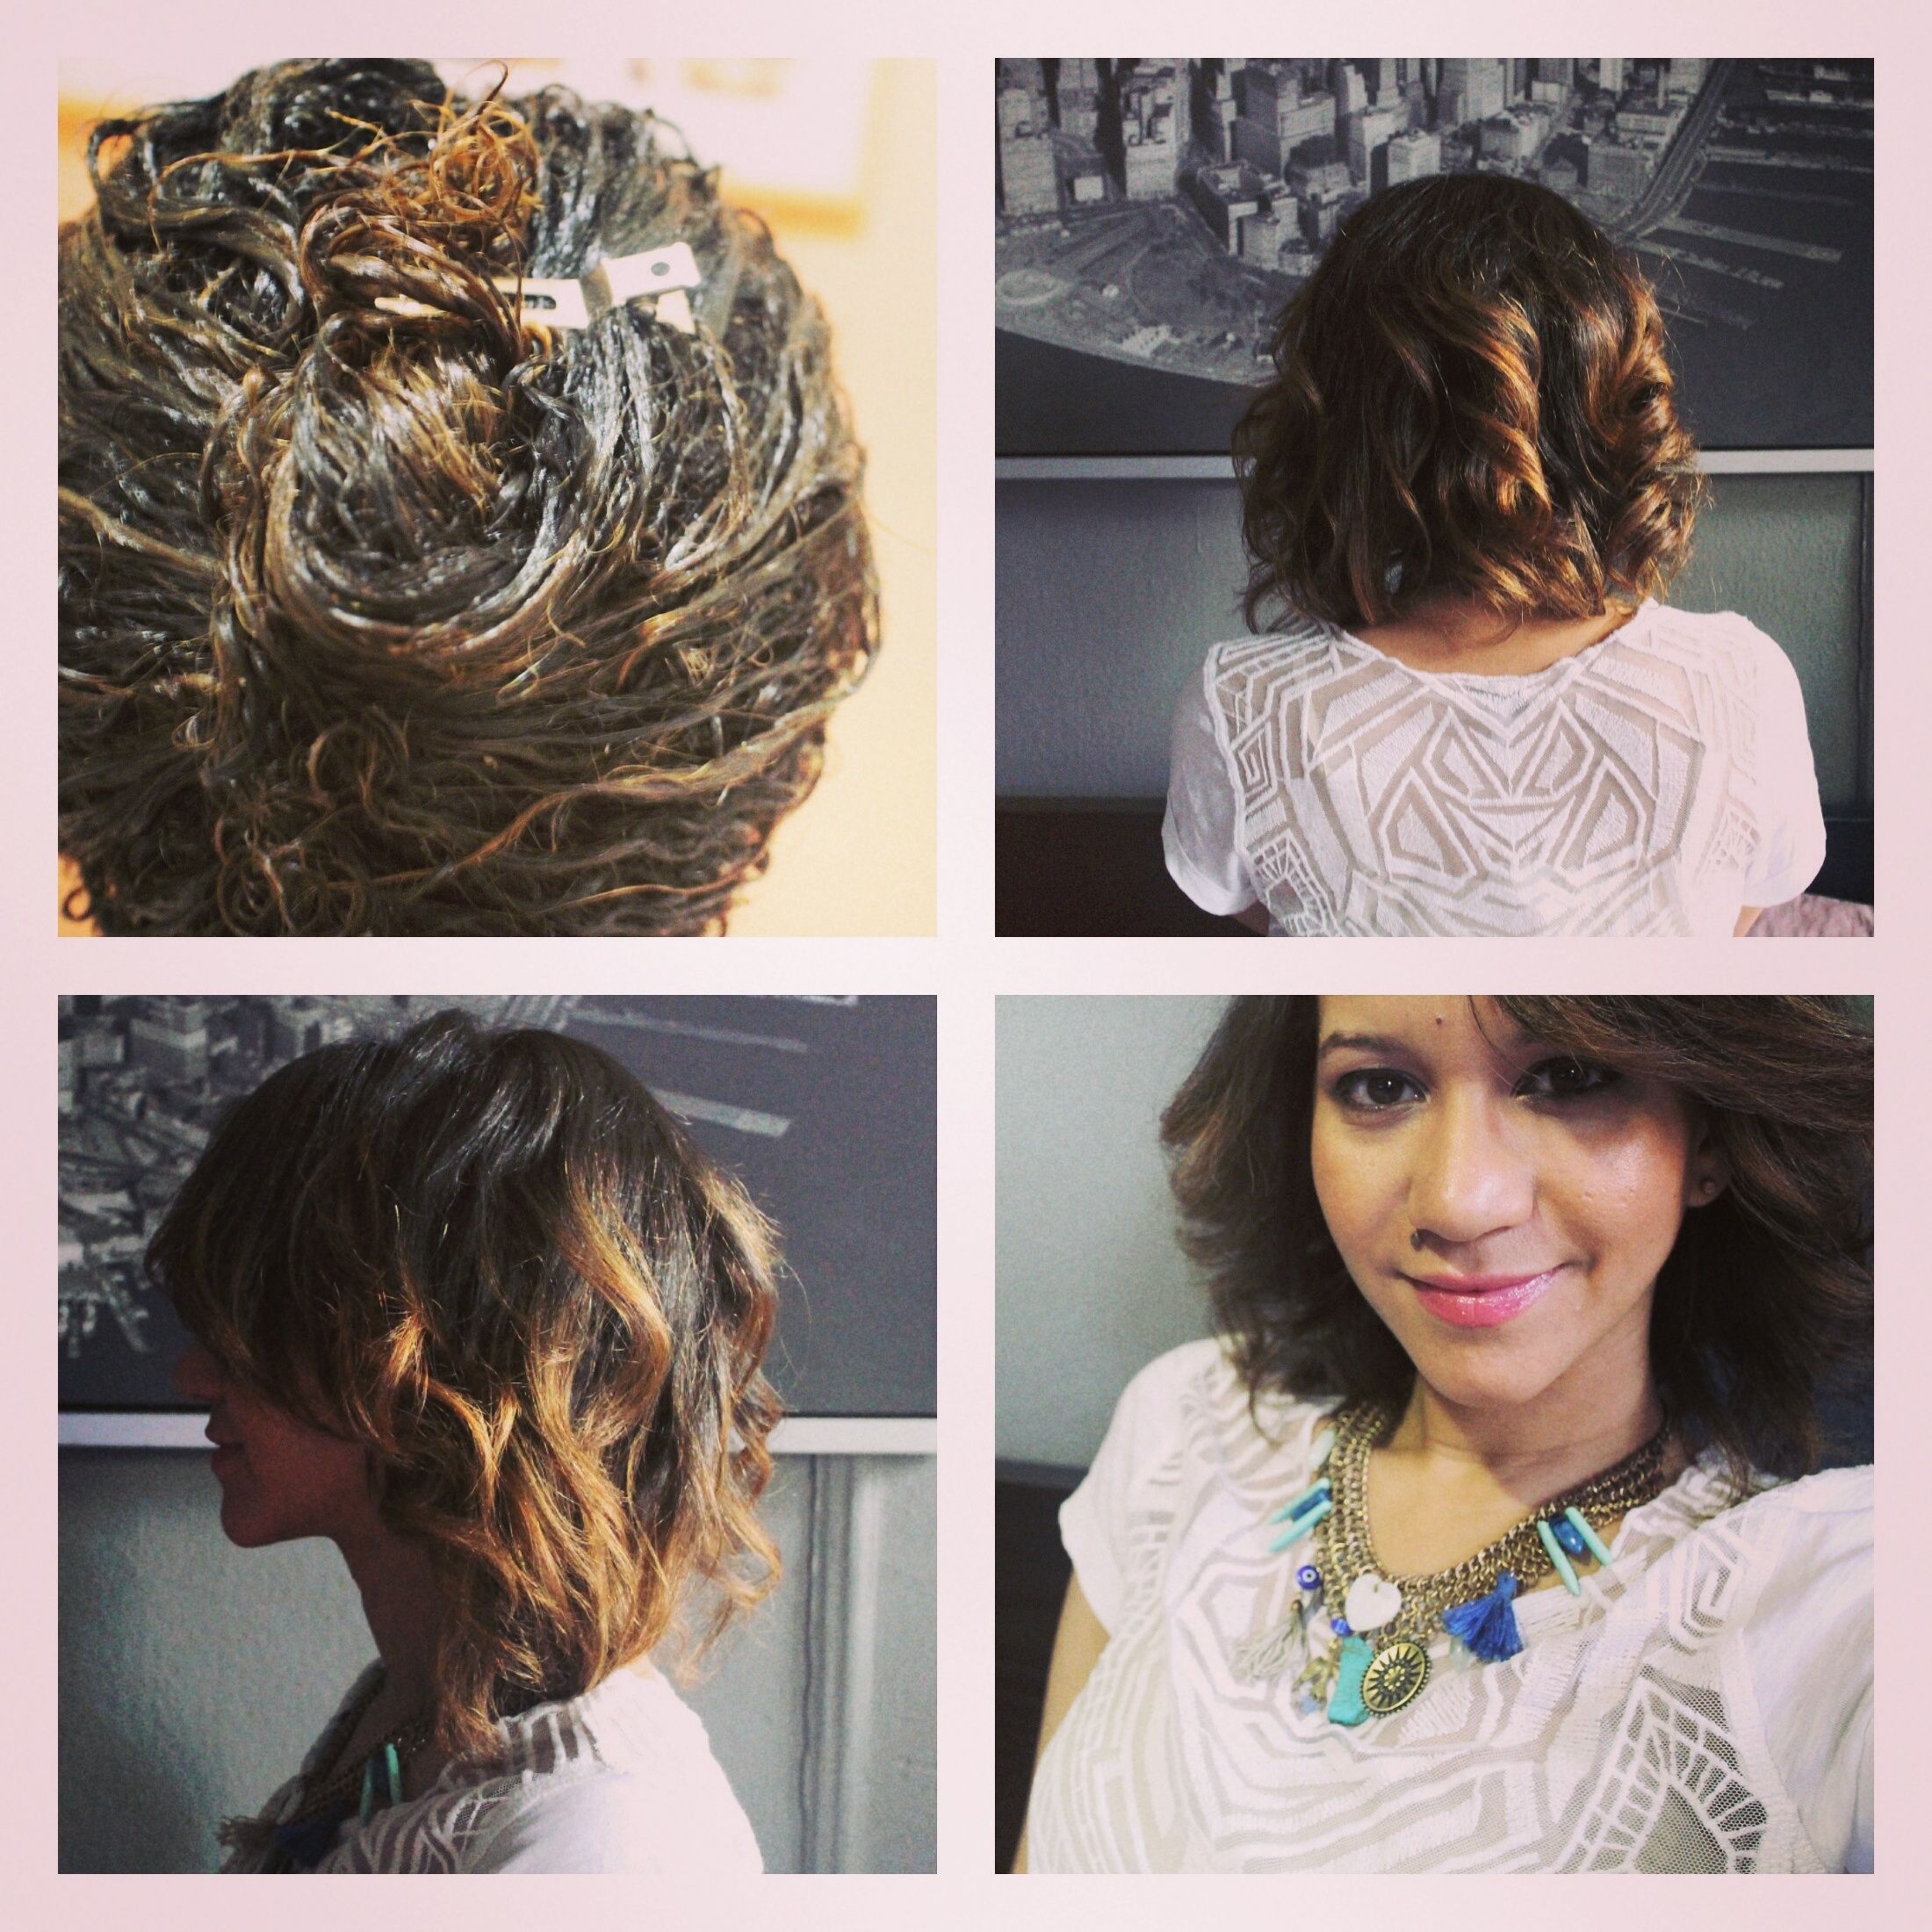 Soft Curls Results For Short Hair Using Morrocco Method Apple